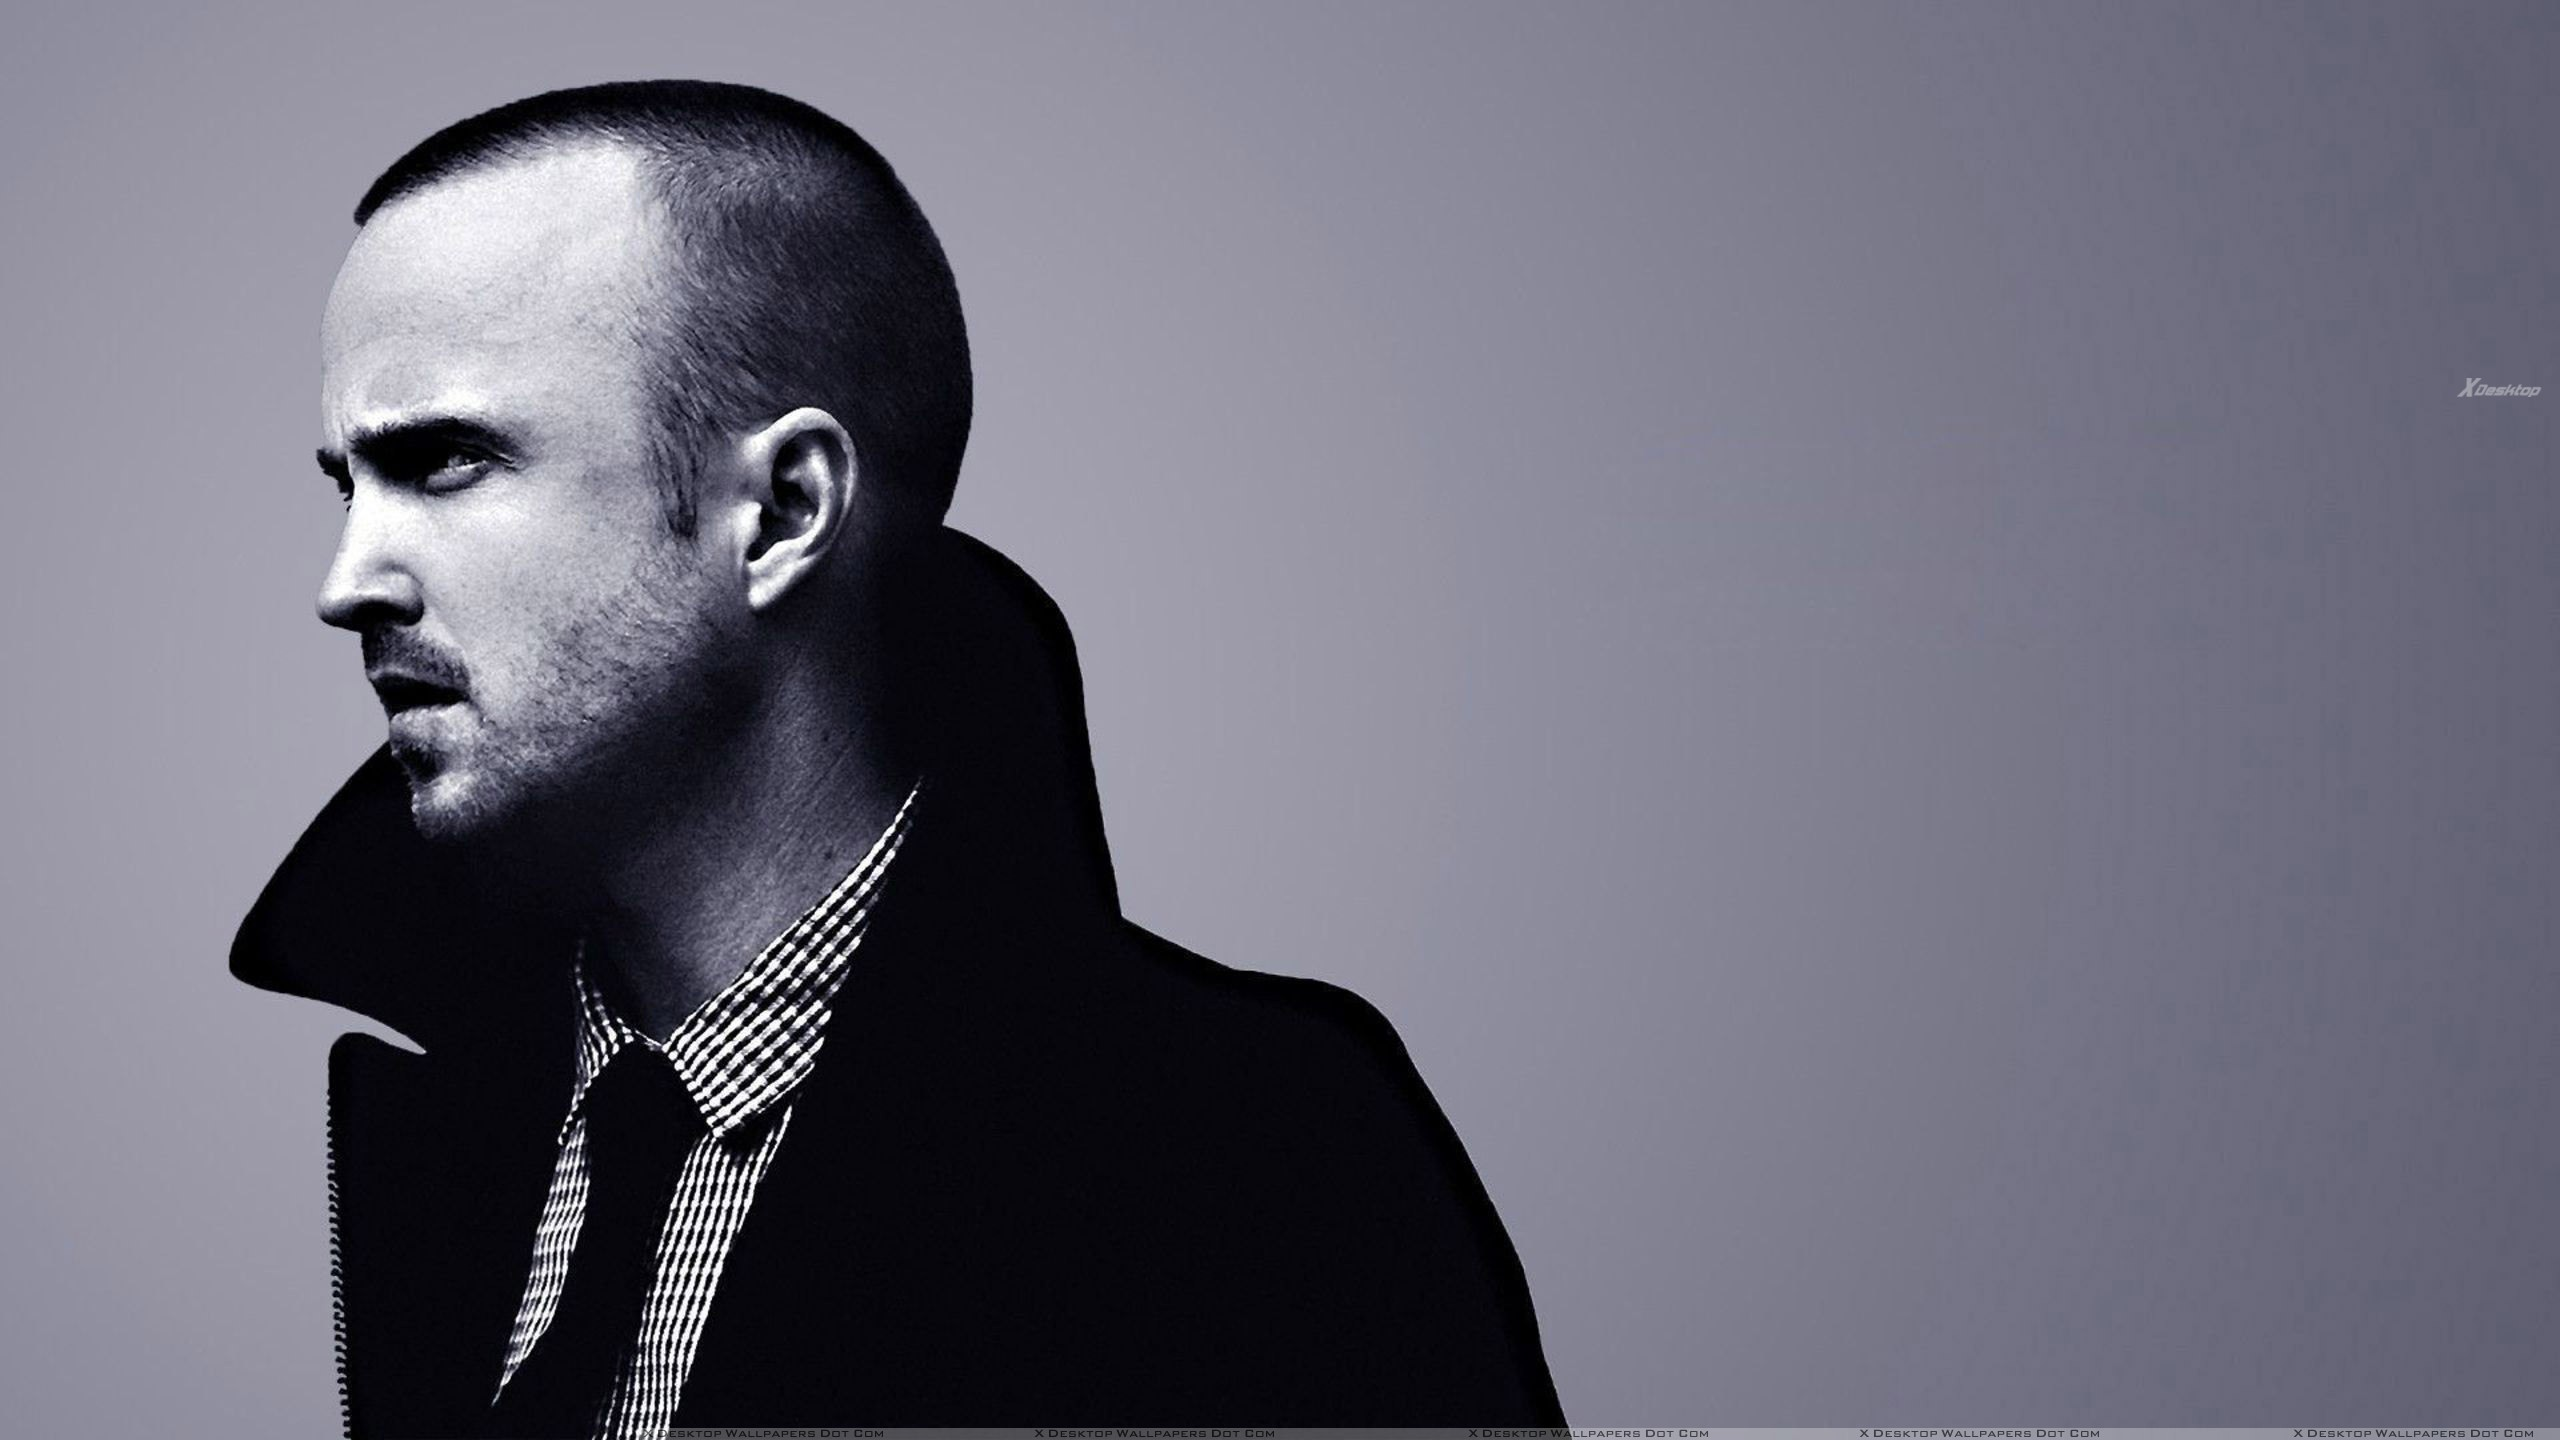 aaron paul wallpapers, photos & images in hd